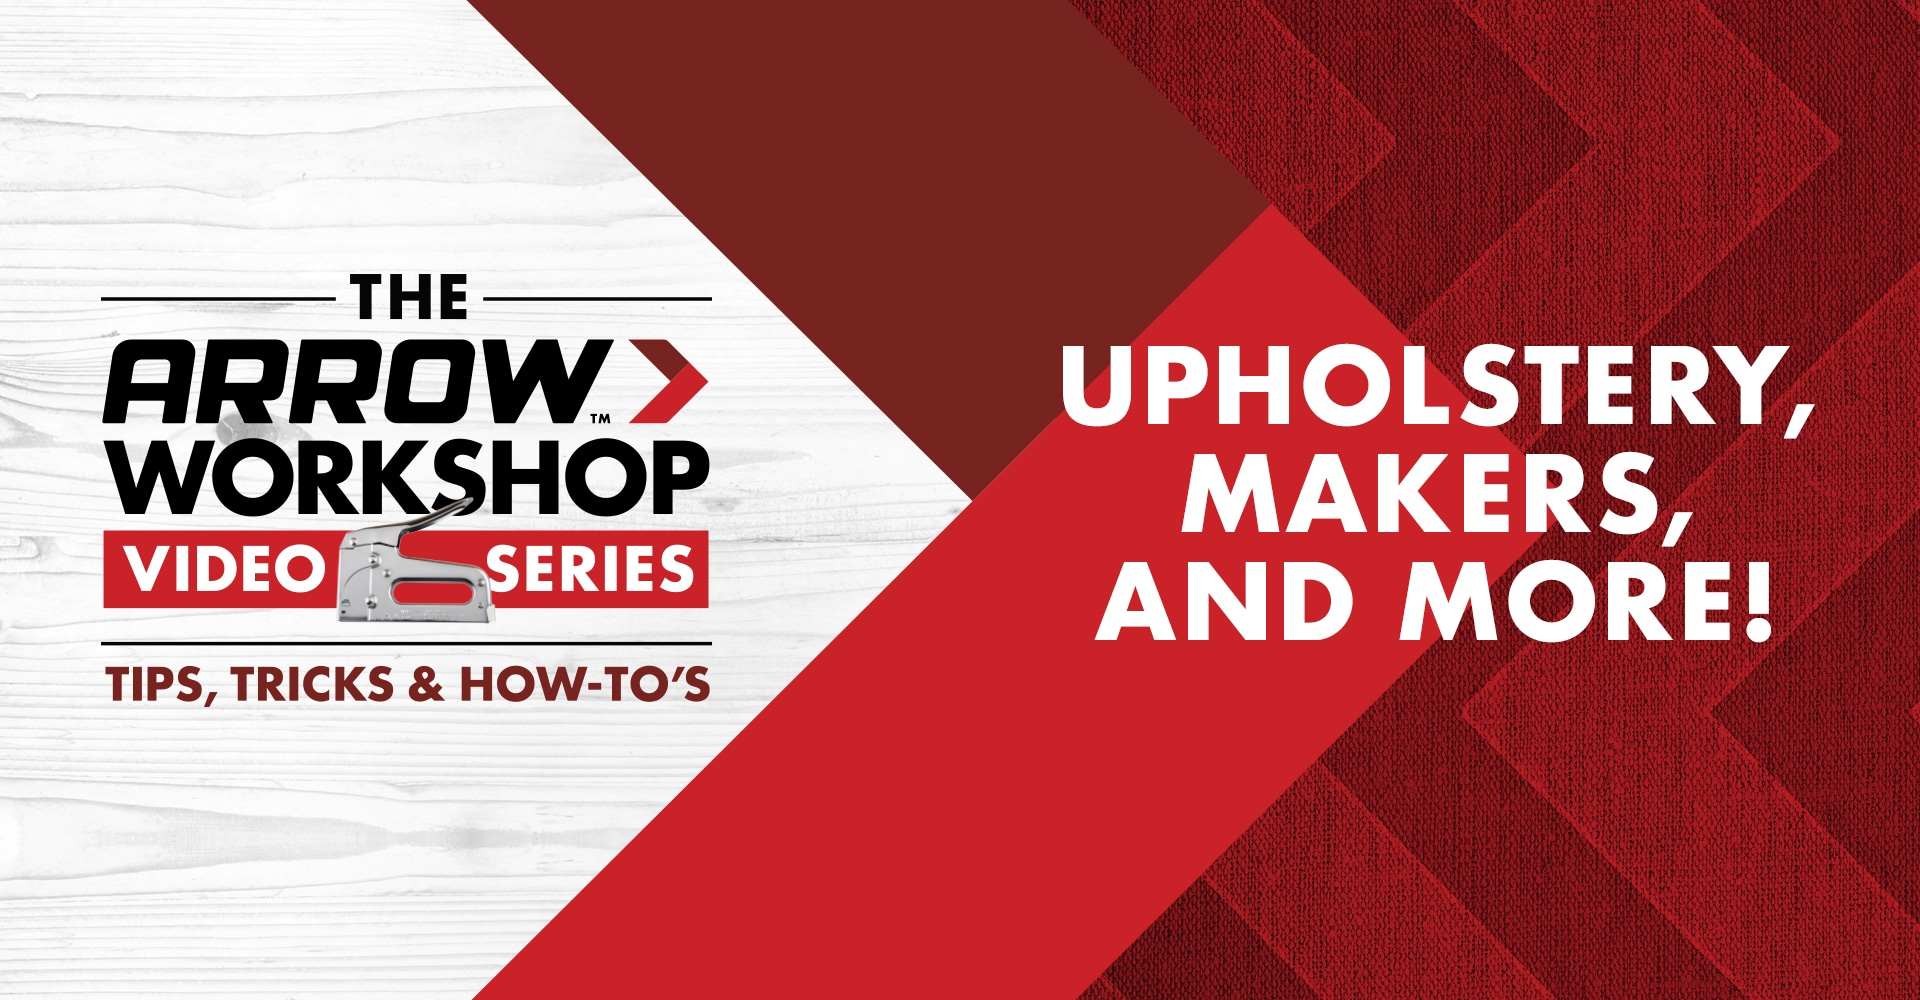 Arrow Workshop Video: Upholstery, Makers and More!